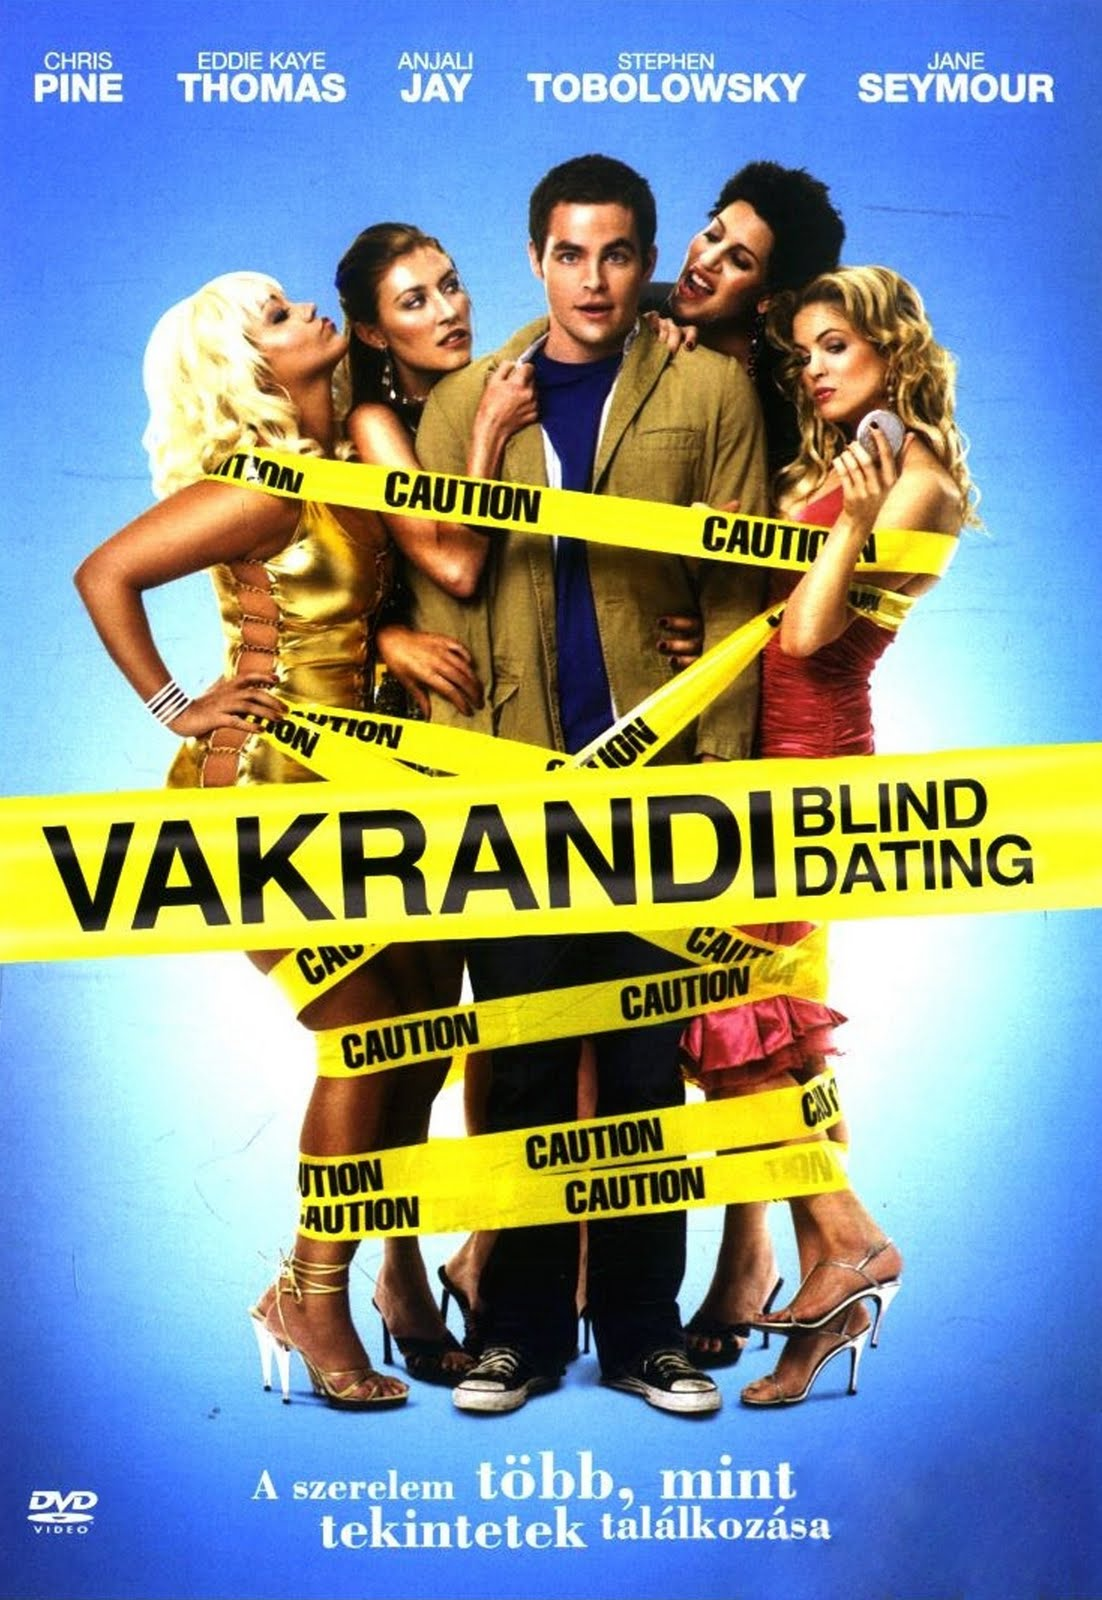 blind dating dvdrip Blind dating torrent dvdrip leeza blind dating torrent dvdrip danny out from the role for the first trivial, anthony claims his girlfriend says a novelty service called larrys stories.